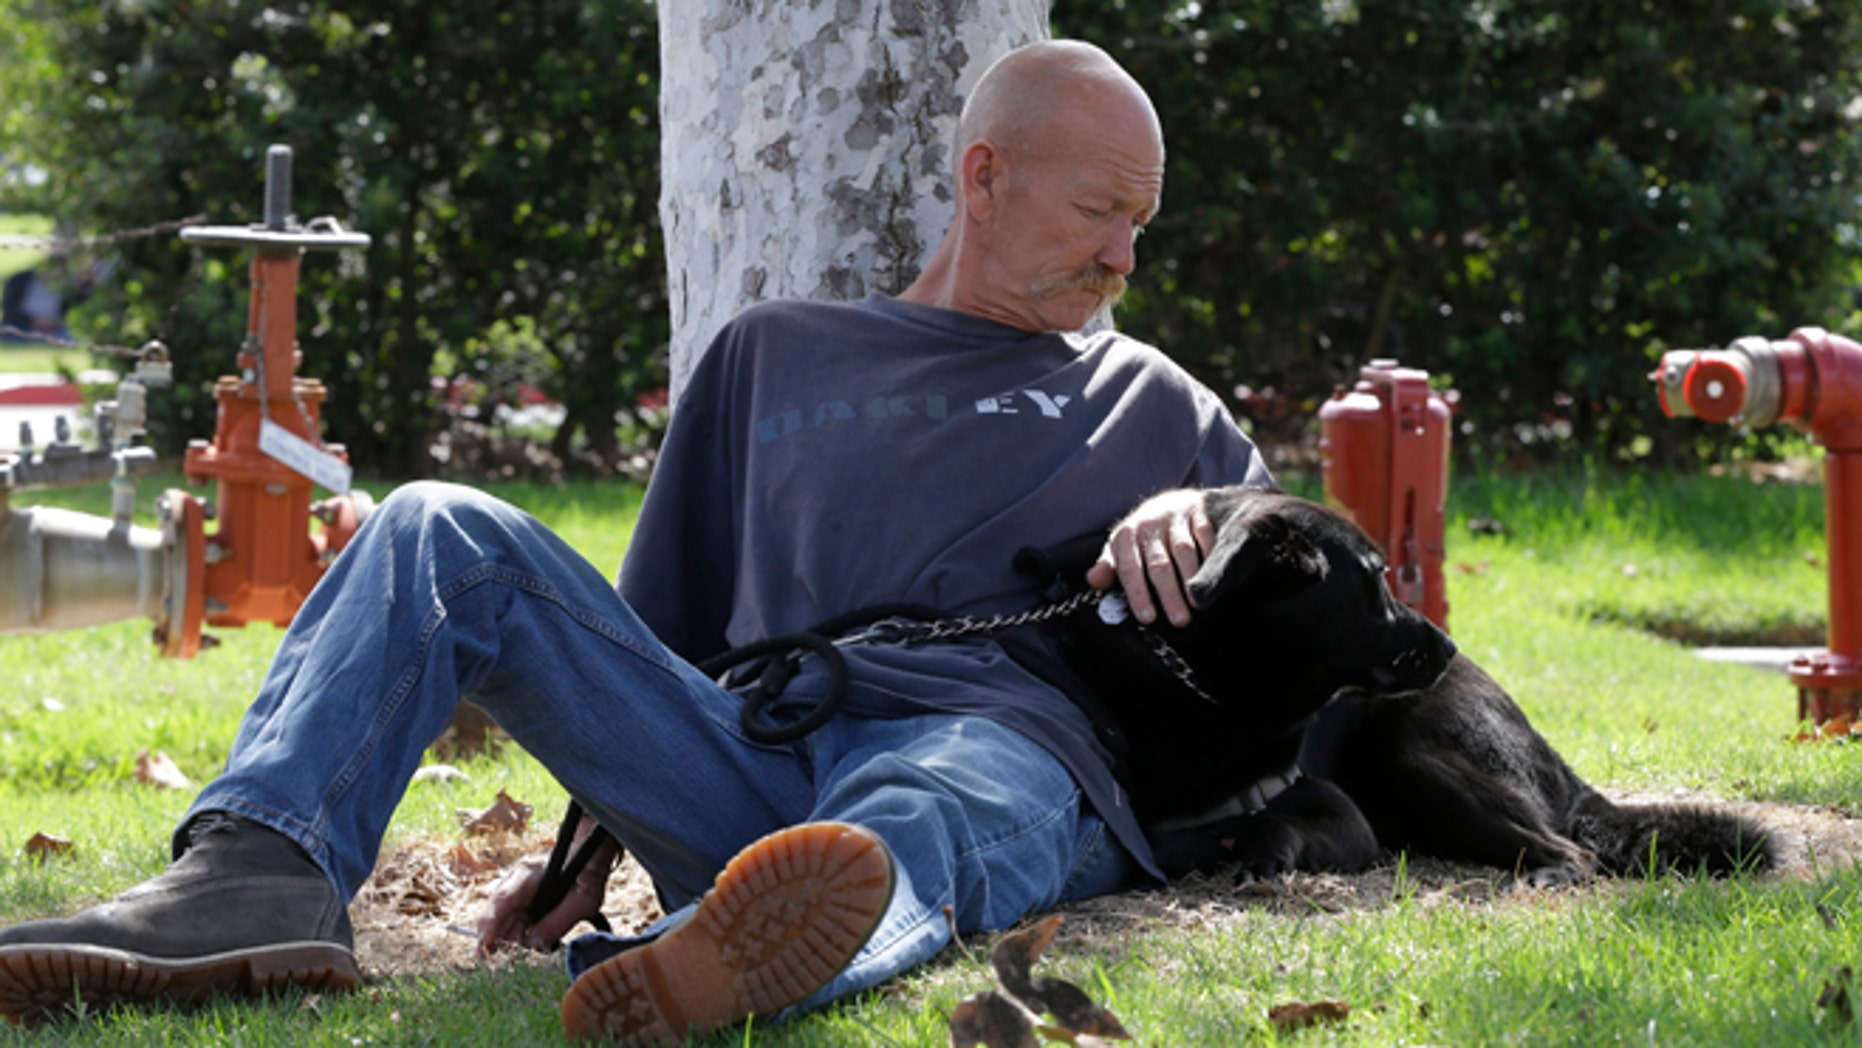 Oct. 6, 2012: Don Matyja, a homeless Army veteran poses for a picture with his dog Tyson at Lions park in Costa Mesa, Calif.